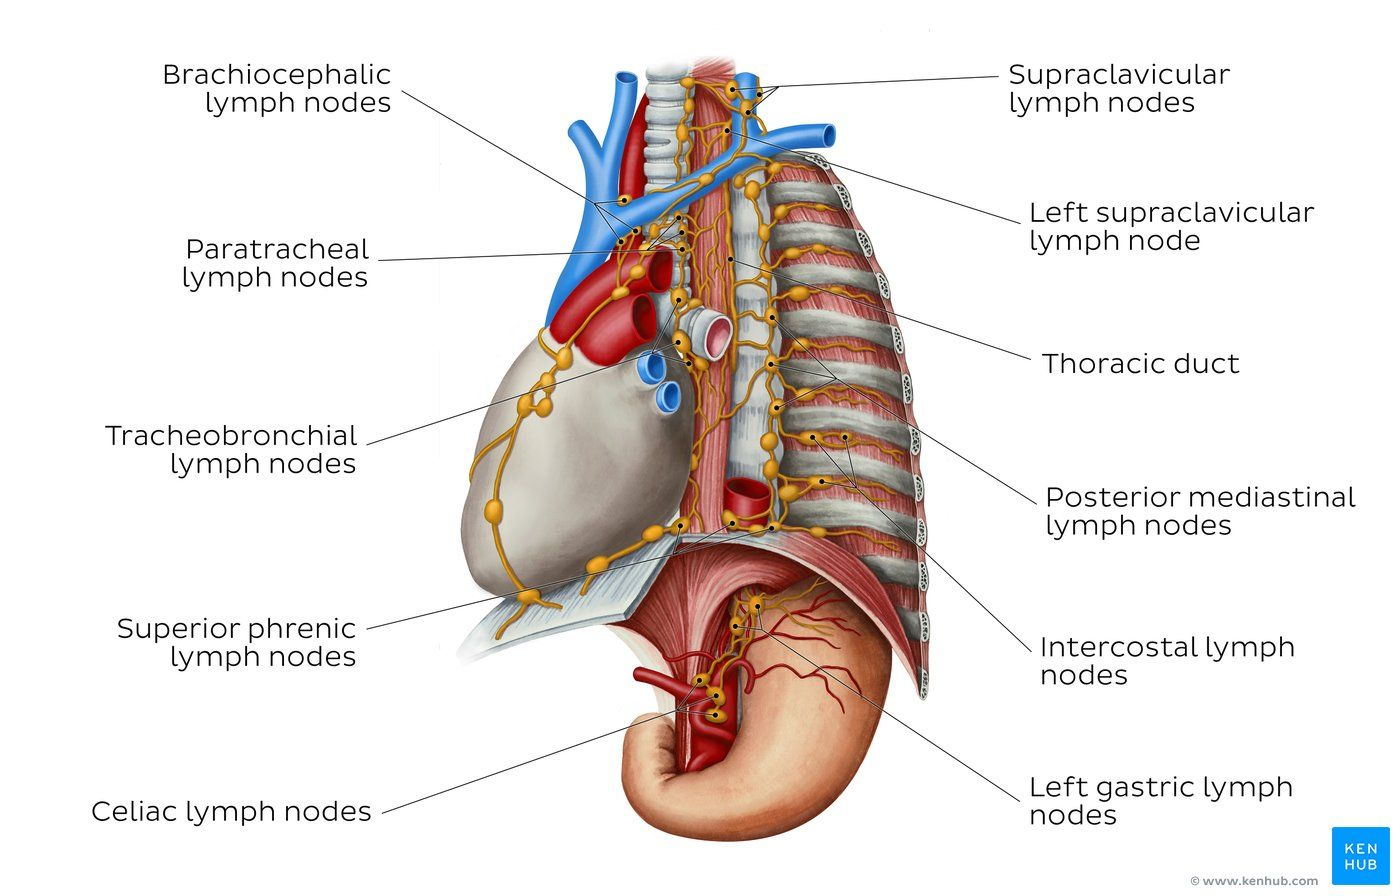 Lymphatics Of The Mediastinum Overview In 2020 Thoracic Cavity Thoracic Duct Lymph Nodes